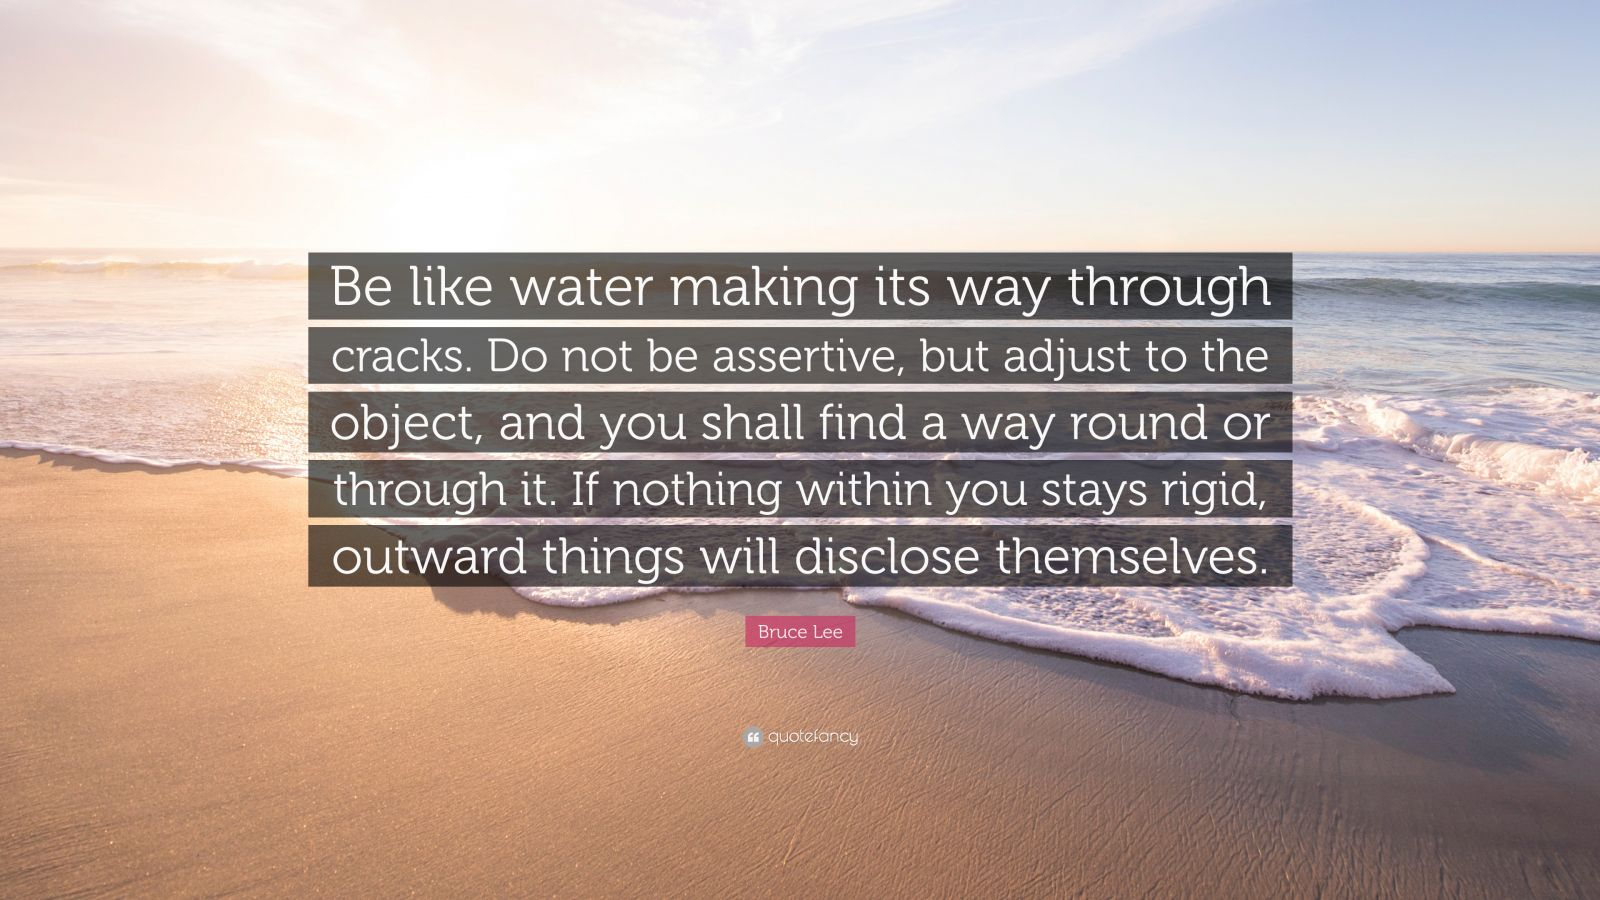 """Bruce Lee Quote: """"Be like water making its way through cracks. Do not be assertive, but adjust to the object, and you shall find a way round or through it. If nothing within you stays rigid, outward things will disclose themselves."""""""